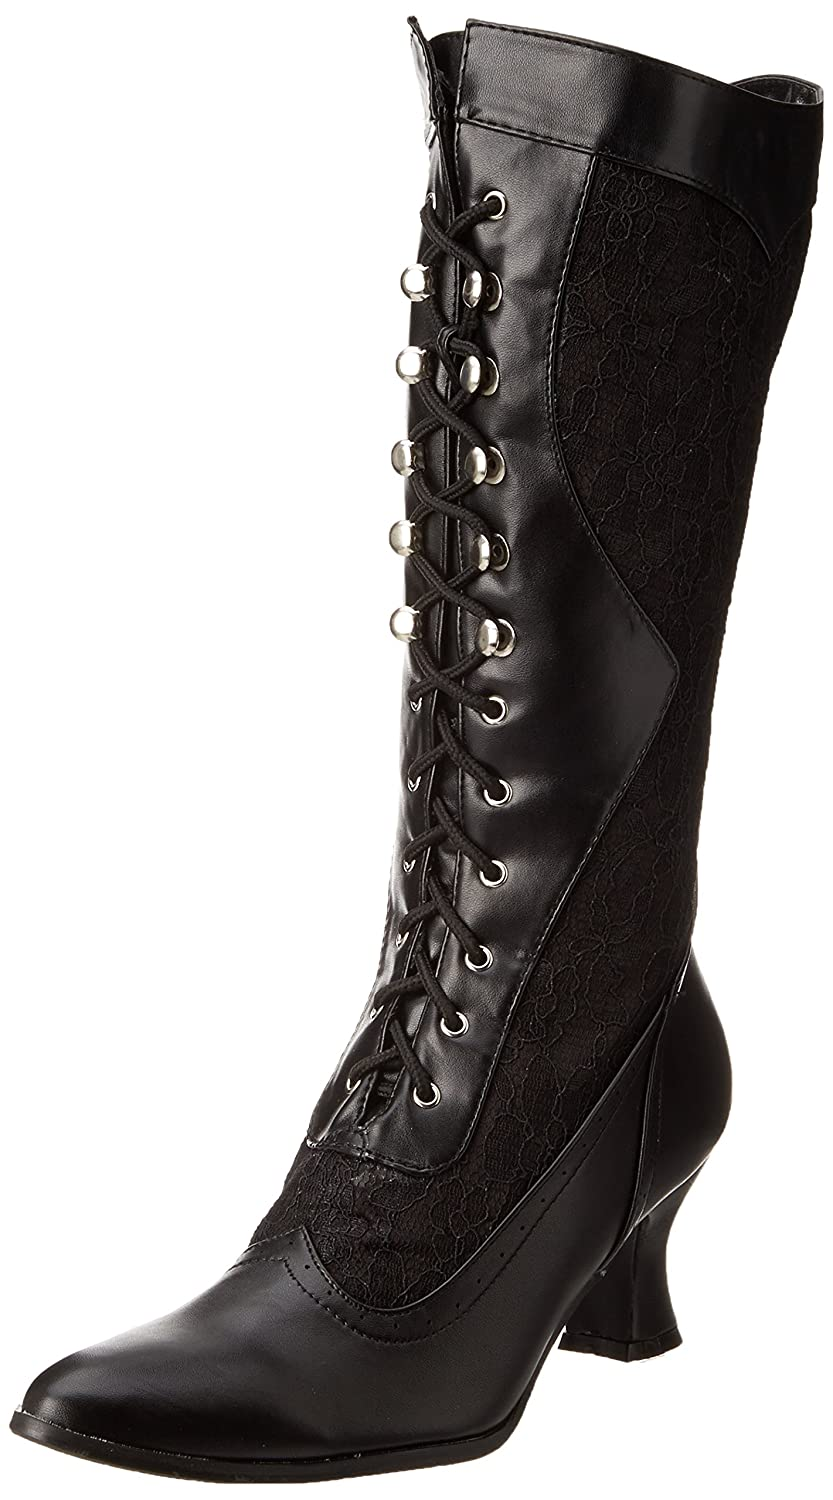 Ladies Victorian Boots & Shoes – Granny boots Rebecca Lace Heel Boot $52.00 AT vintagedancer.com